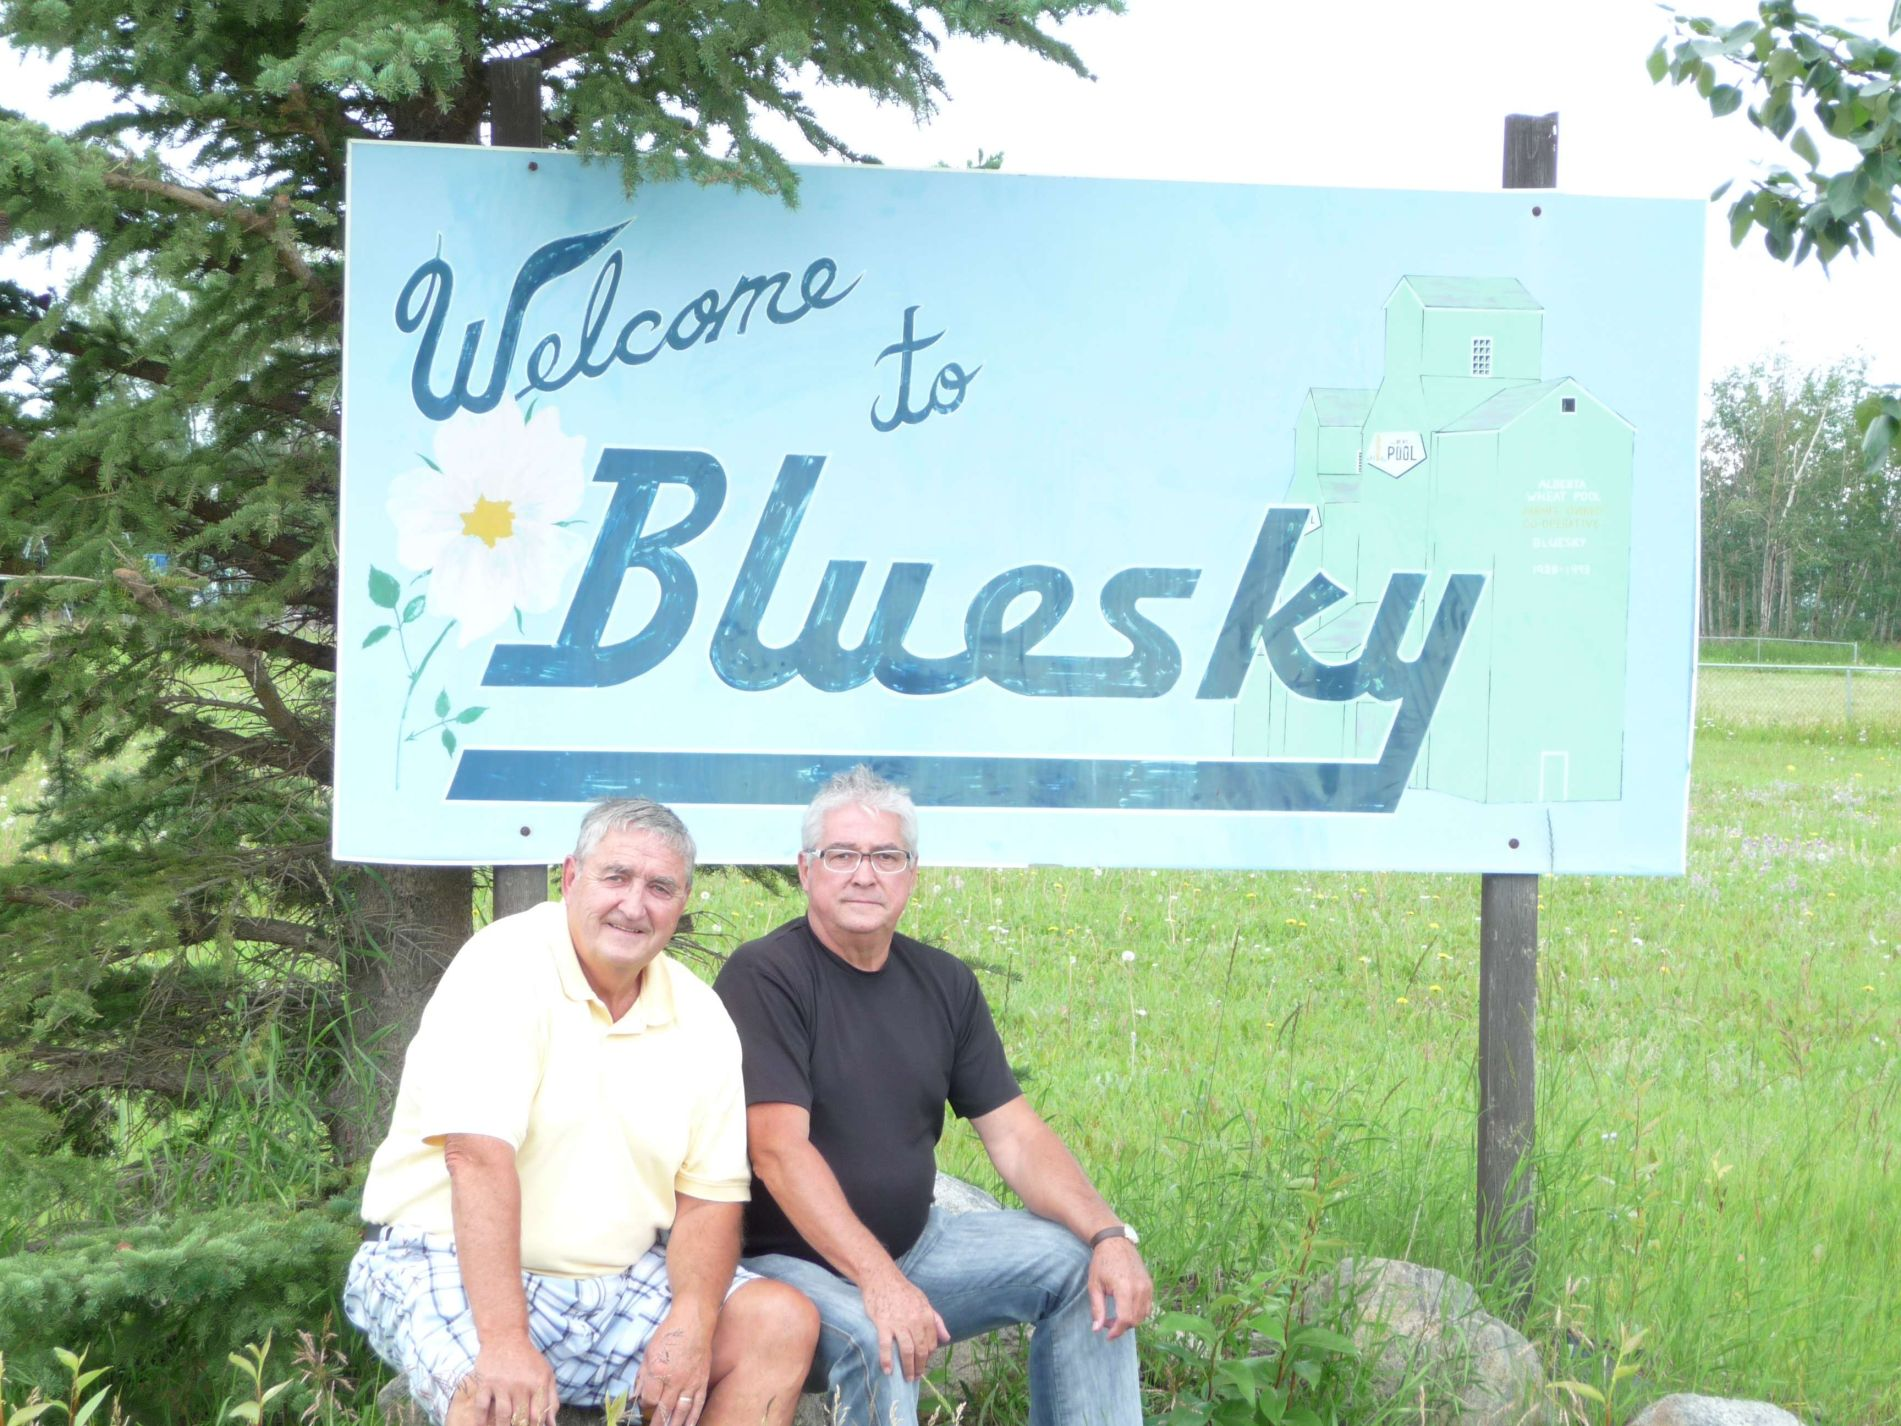 Phil and Hubert at the Entrance to New Bluesky